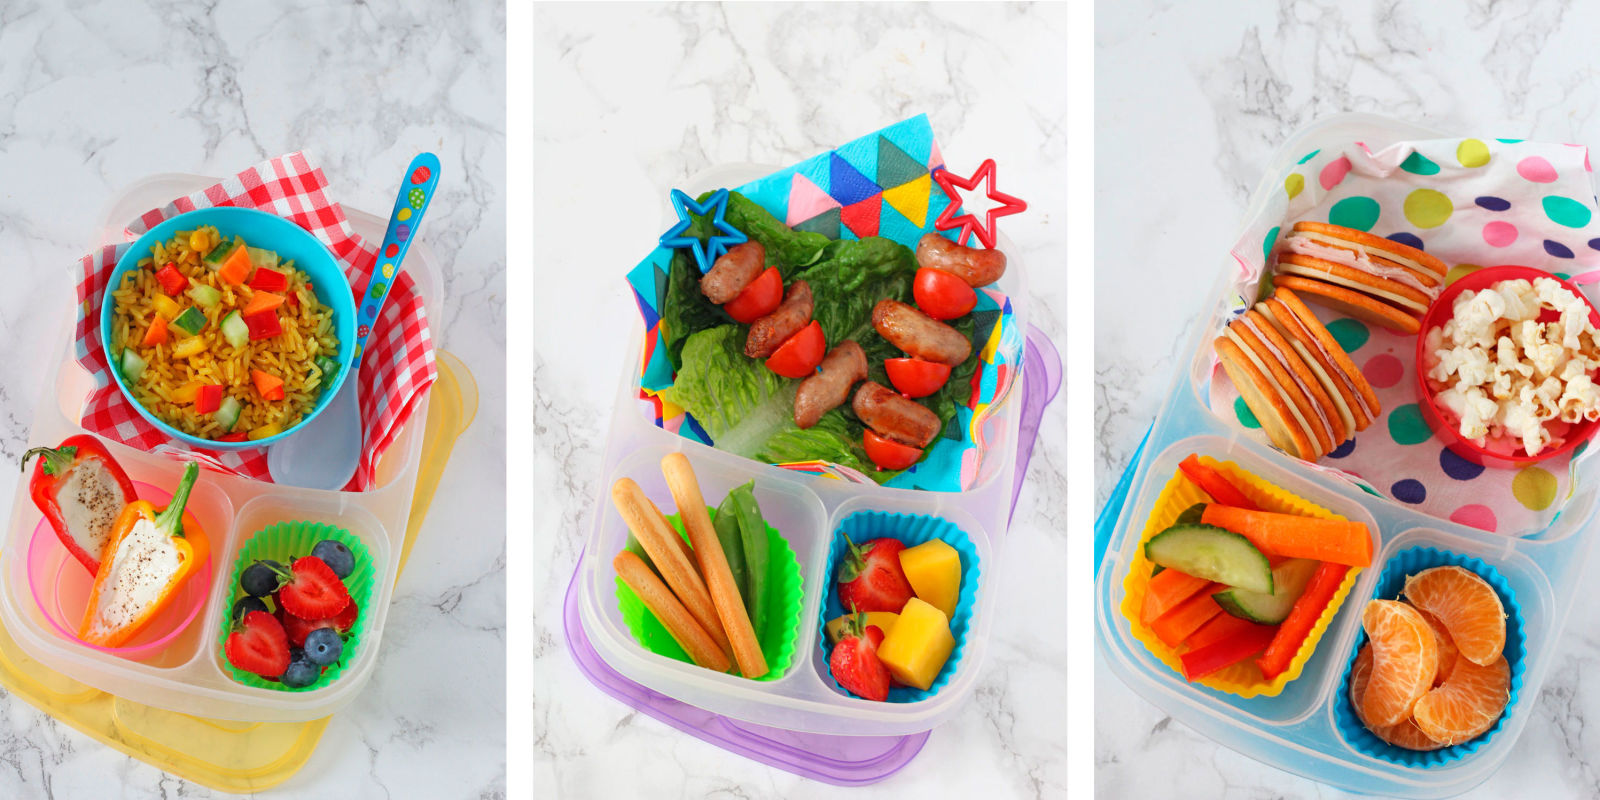 Fun ideas for making simple lunches for kids--for home or for school. Includes healthy sandwich recipes, hamburger recipes, tofu burger recipes, and other easy lunch recipes for kids.